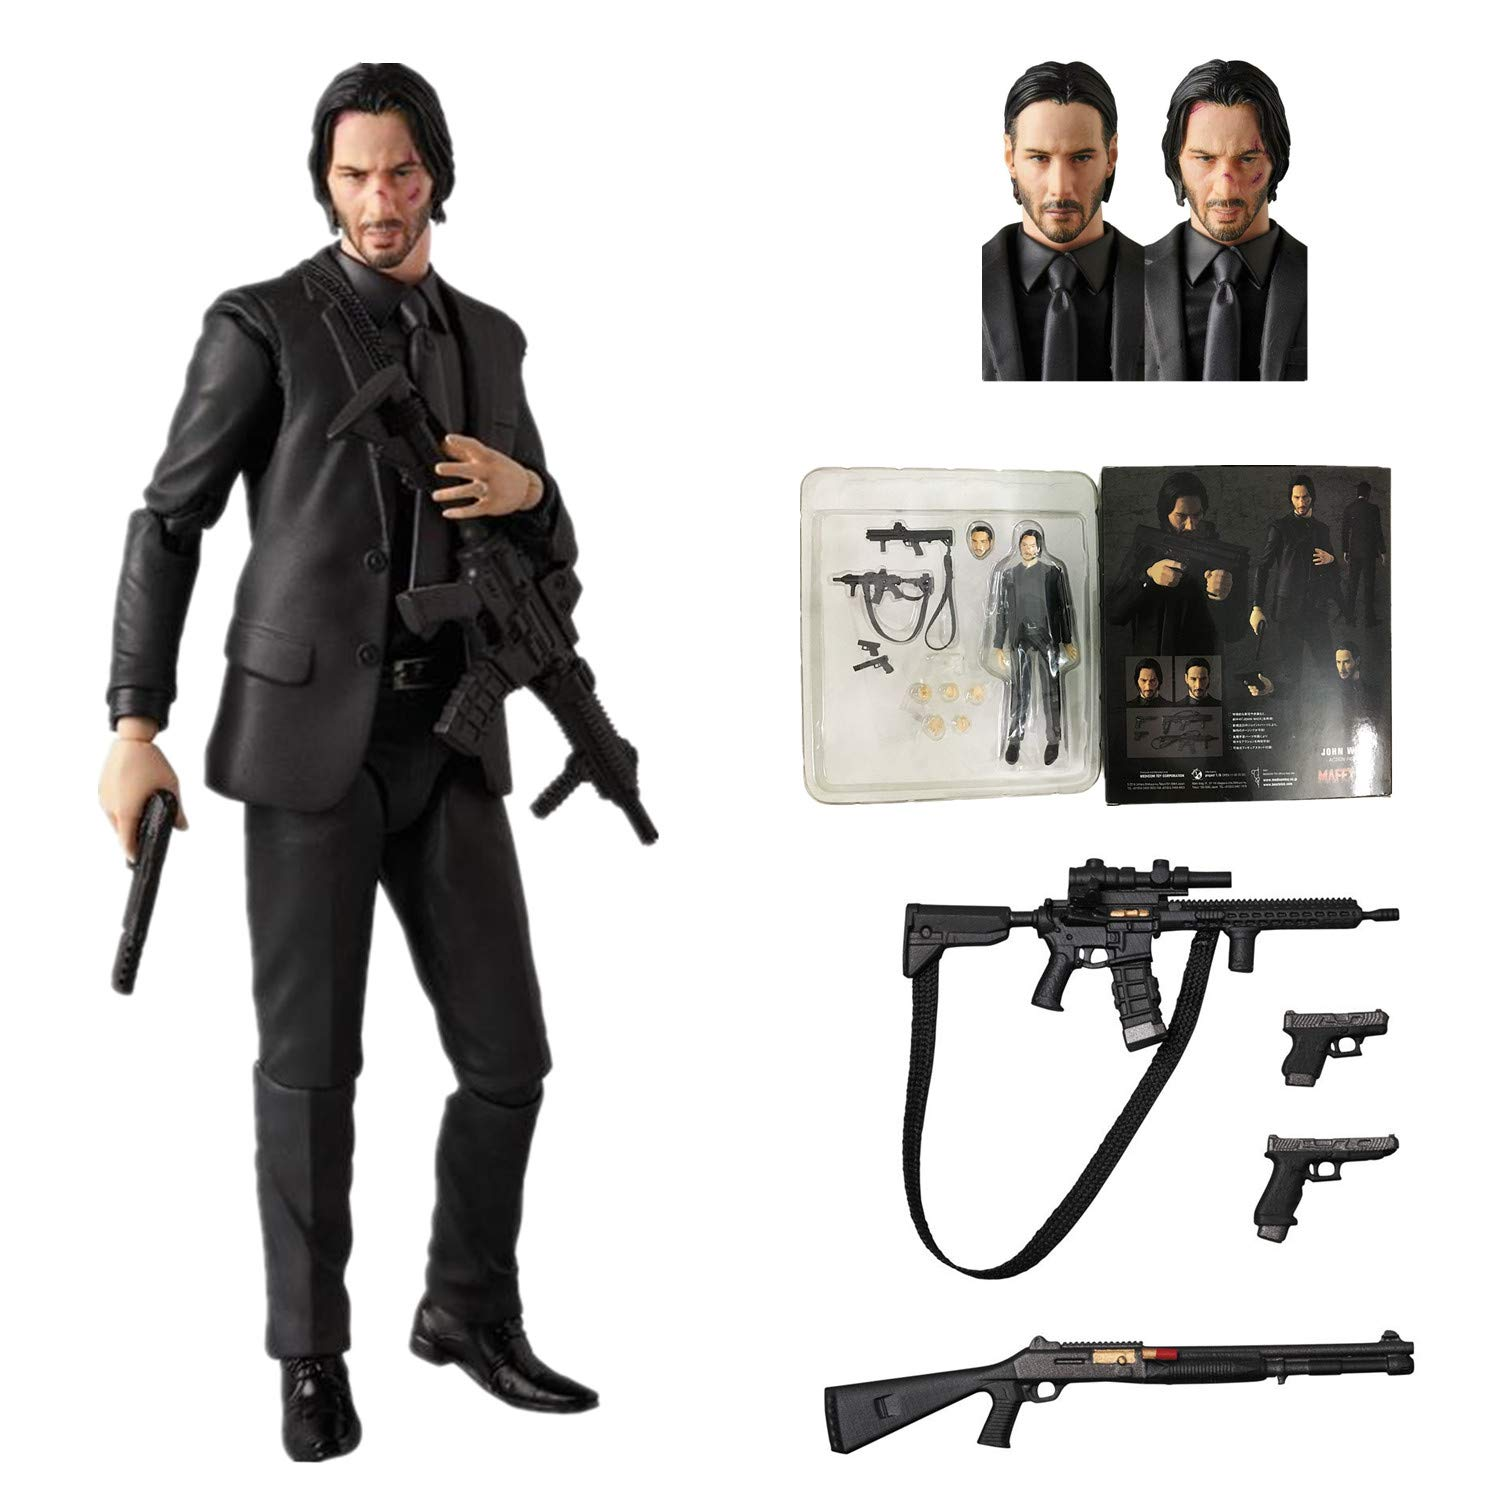 BODAN John Wick Action Figure / Statues Ultimate Horror Collection Gifts - PVC 6'' Scale